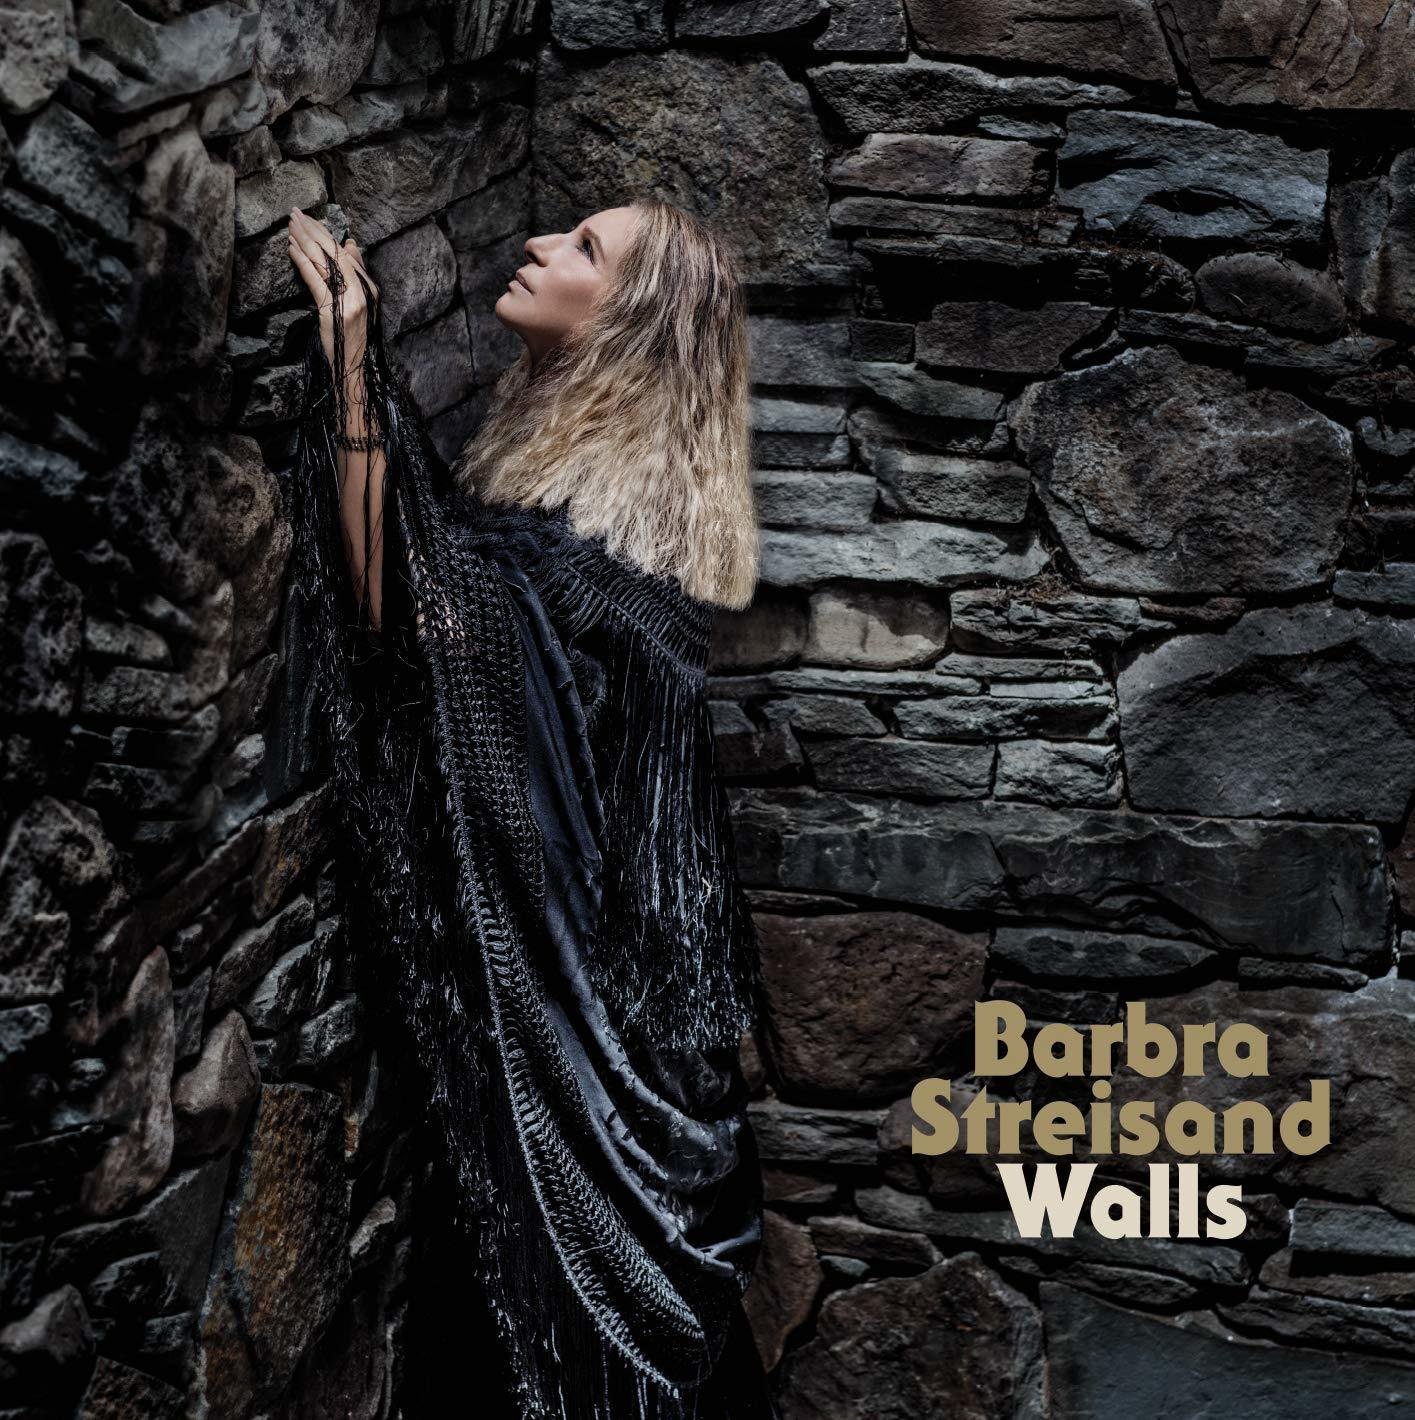 Walls by Barbra Streisand image